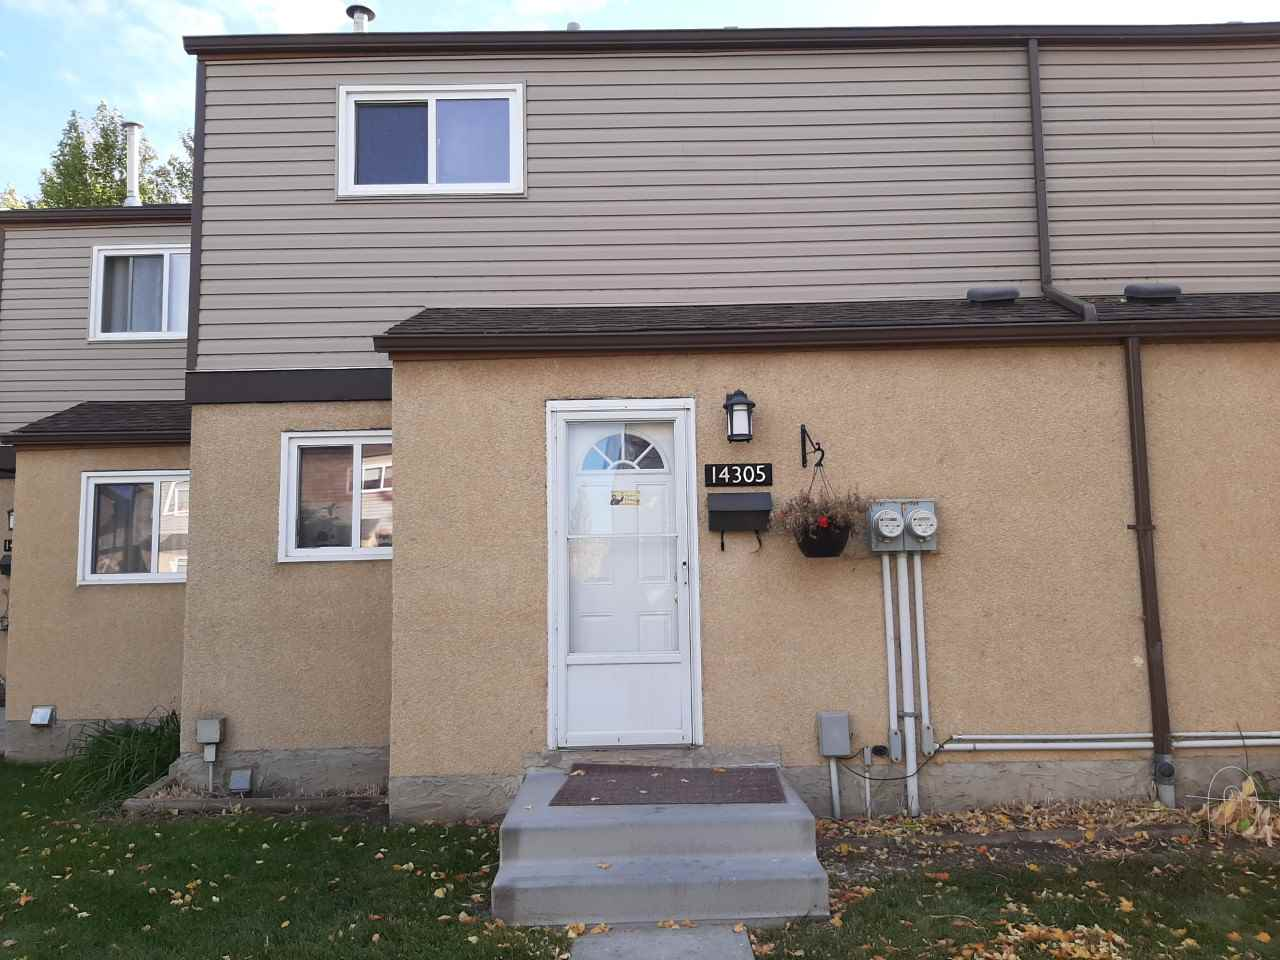 Attention, Attention all investors and first time buyers, it's time for this well-managed and maintained complex offering 3 bedroom 1.5 bath. Walking distance to school, shopping, transportation, recreation center, parks and trails. Only a hope skip and jump to Anthony Henday.